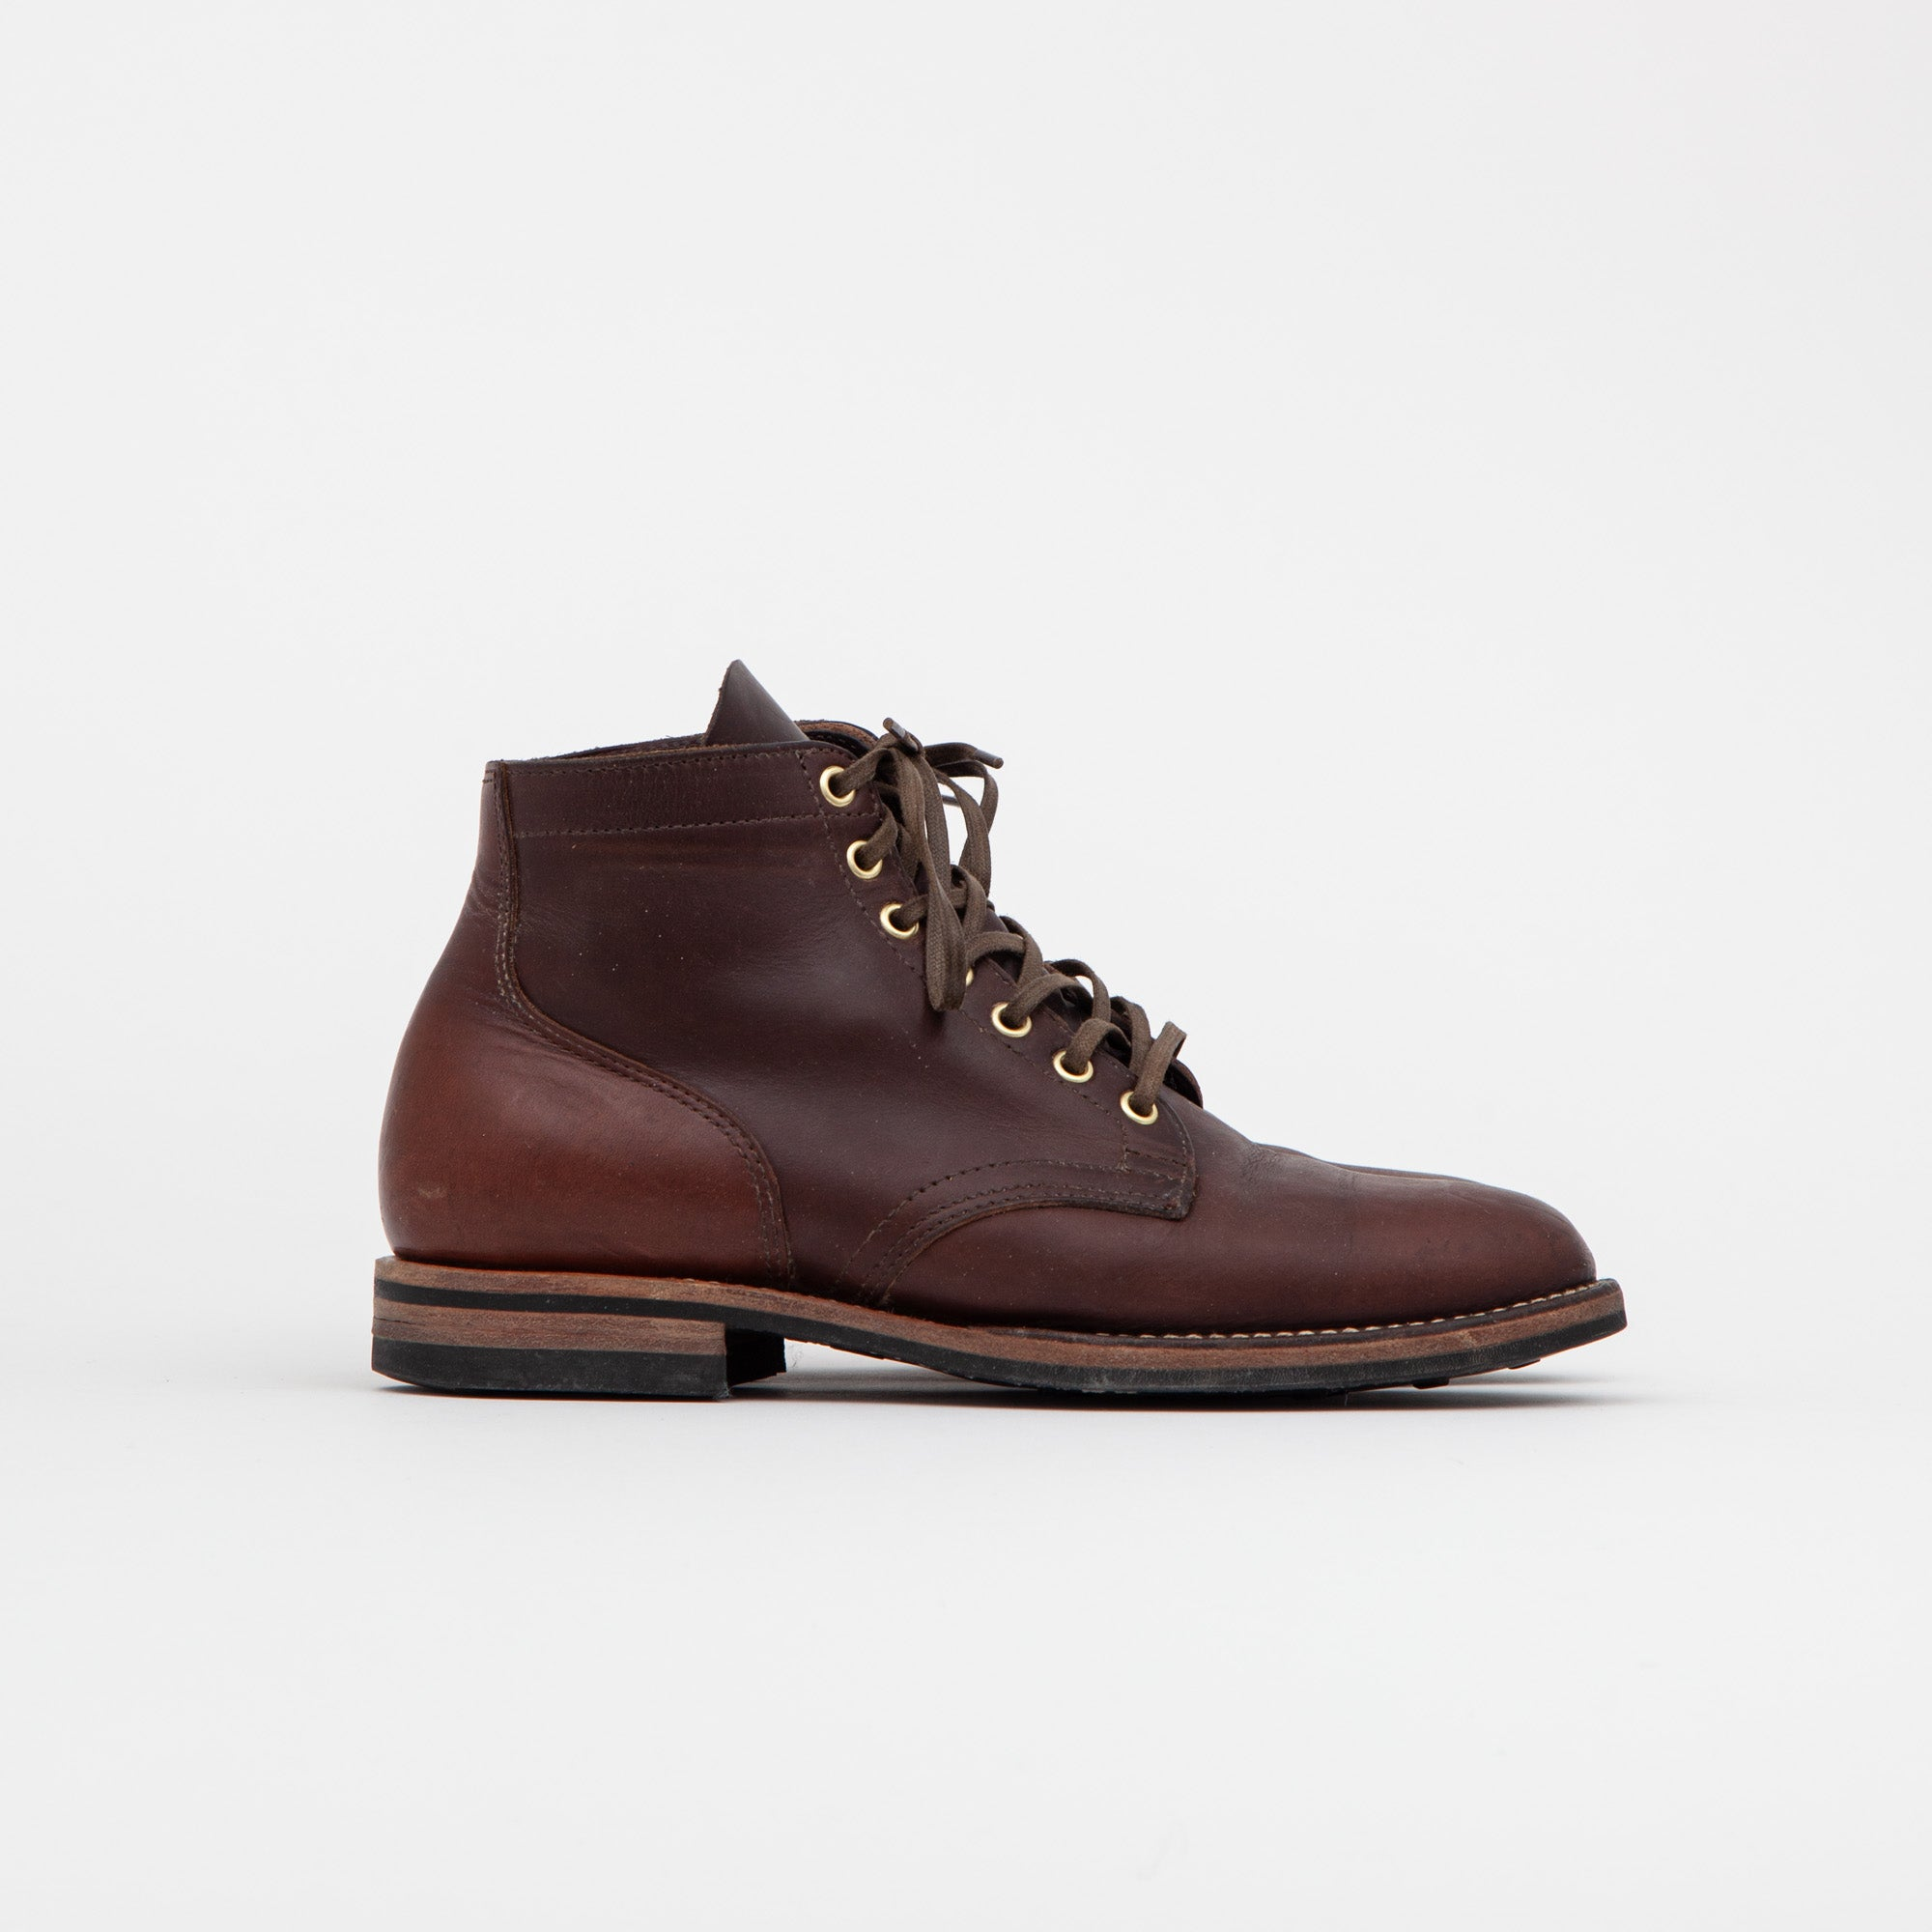 Viberg Boot Leather Service Boots